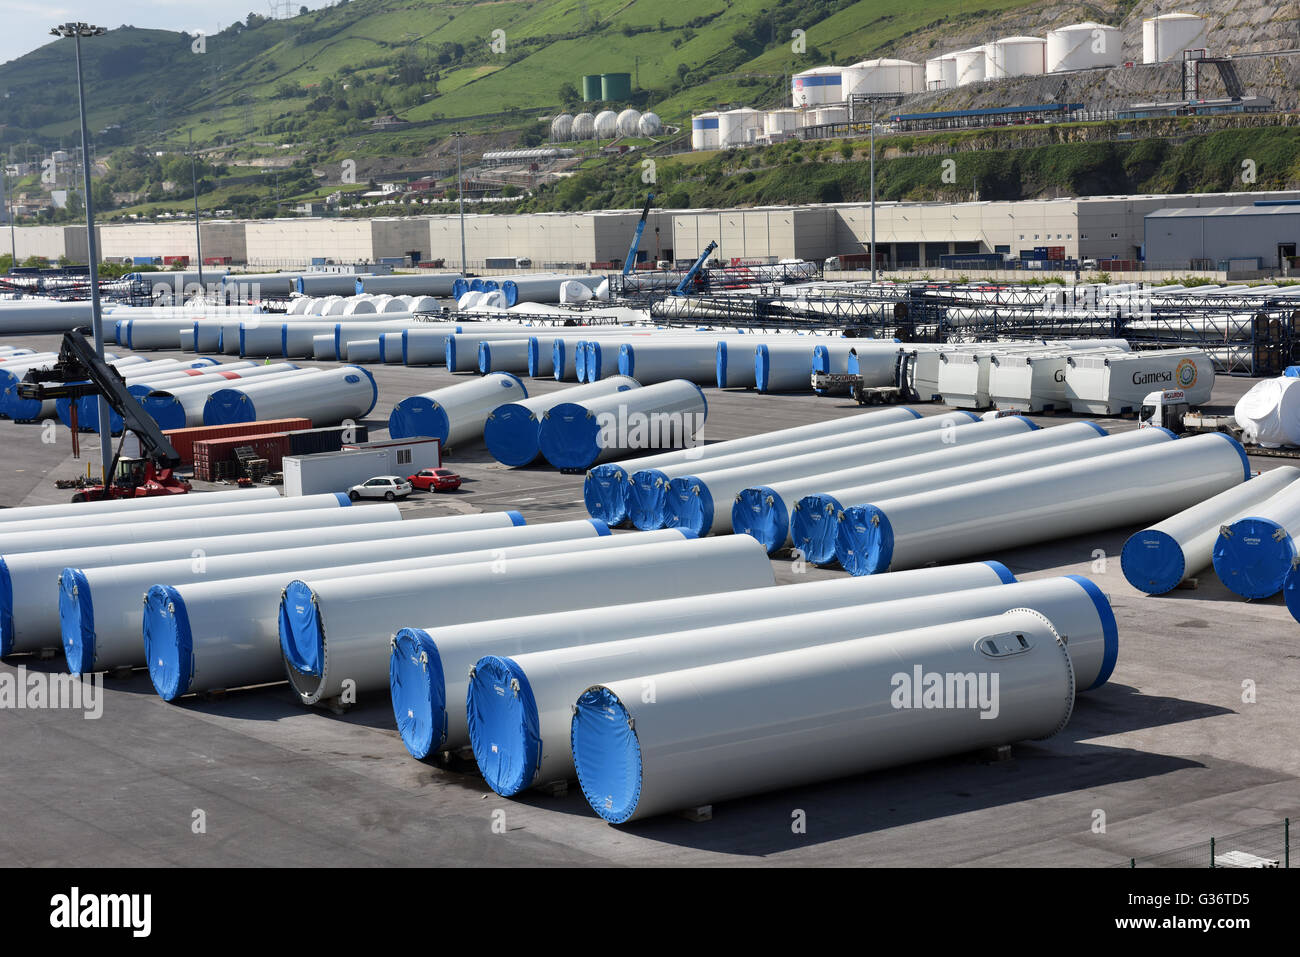 Wind turbines at Bilbao port in Spain - Stock Image